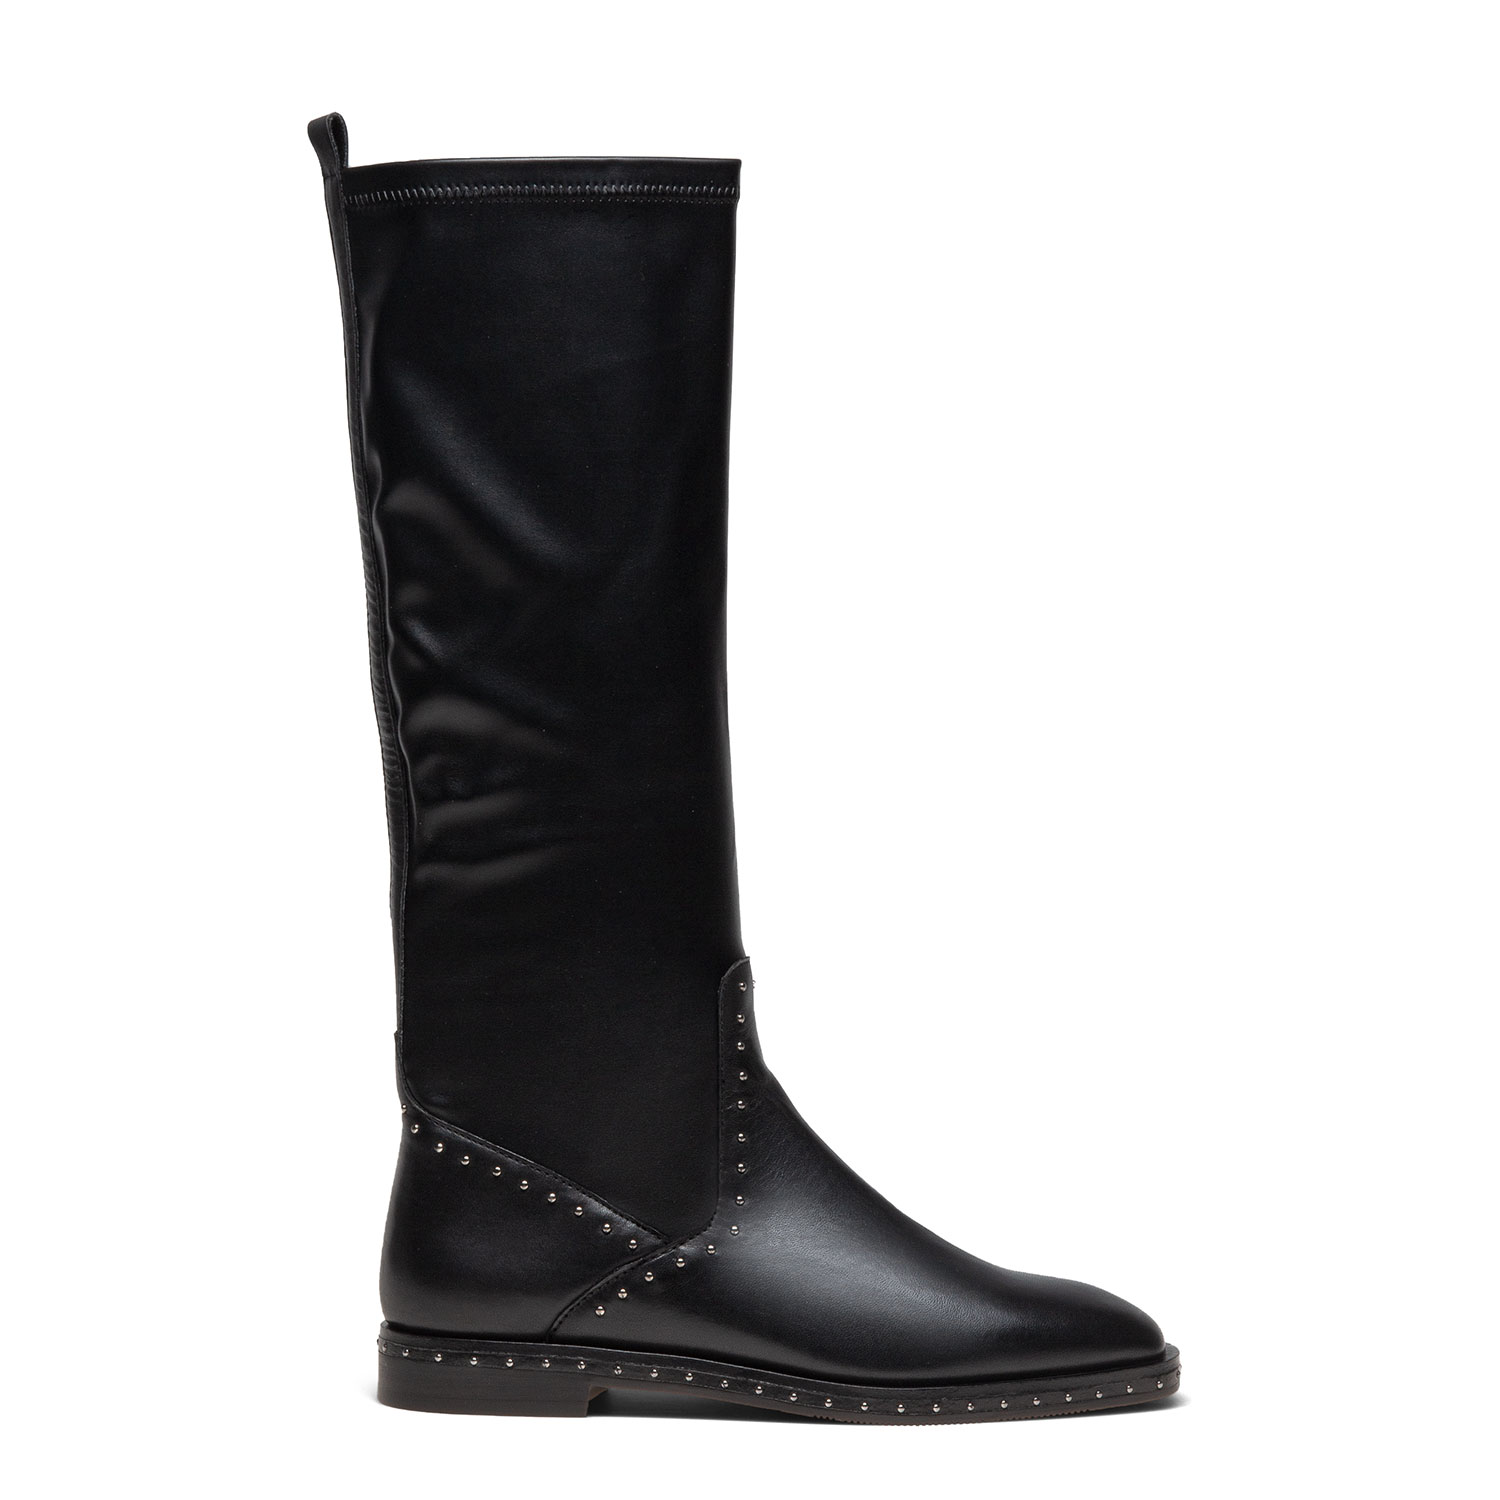 Women's fur-lined mid-calf boots PAZOLINI JH-TAM4-1